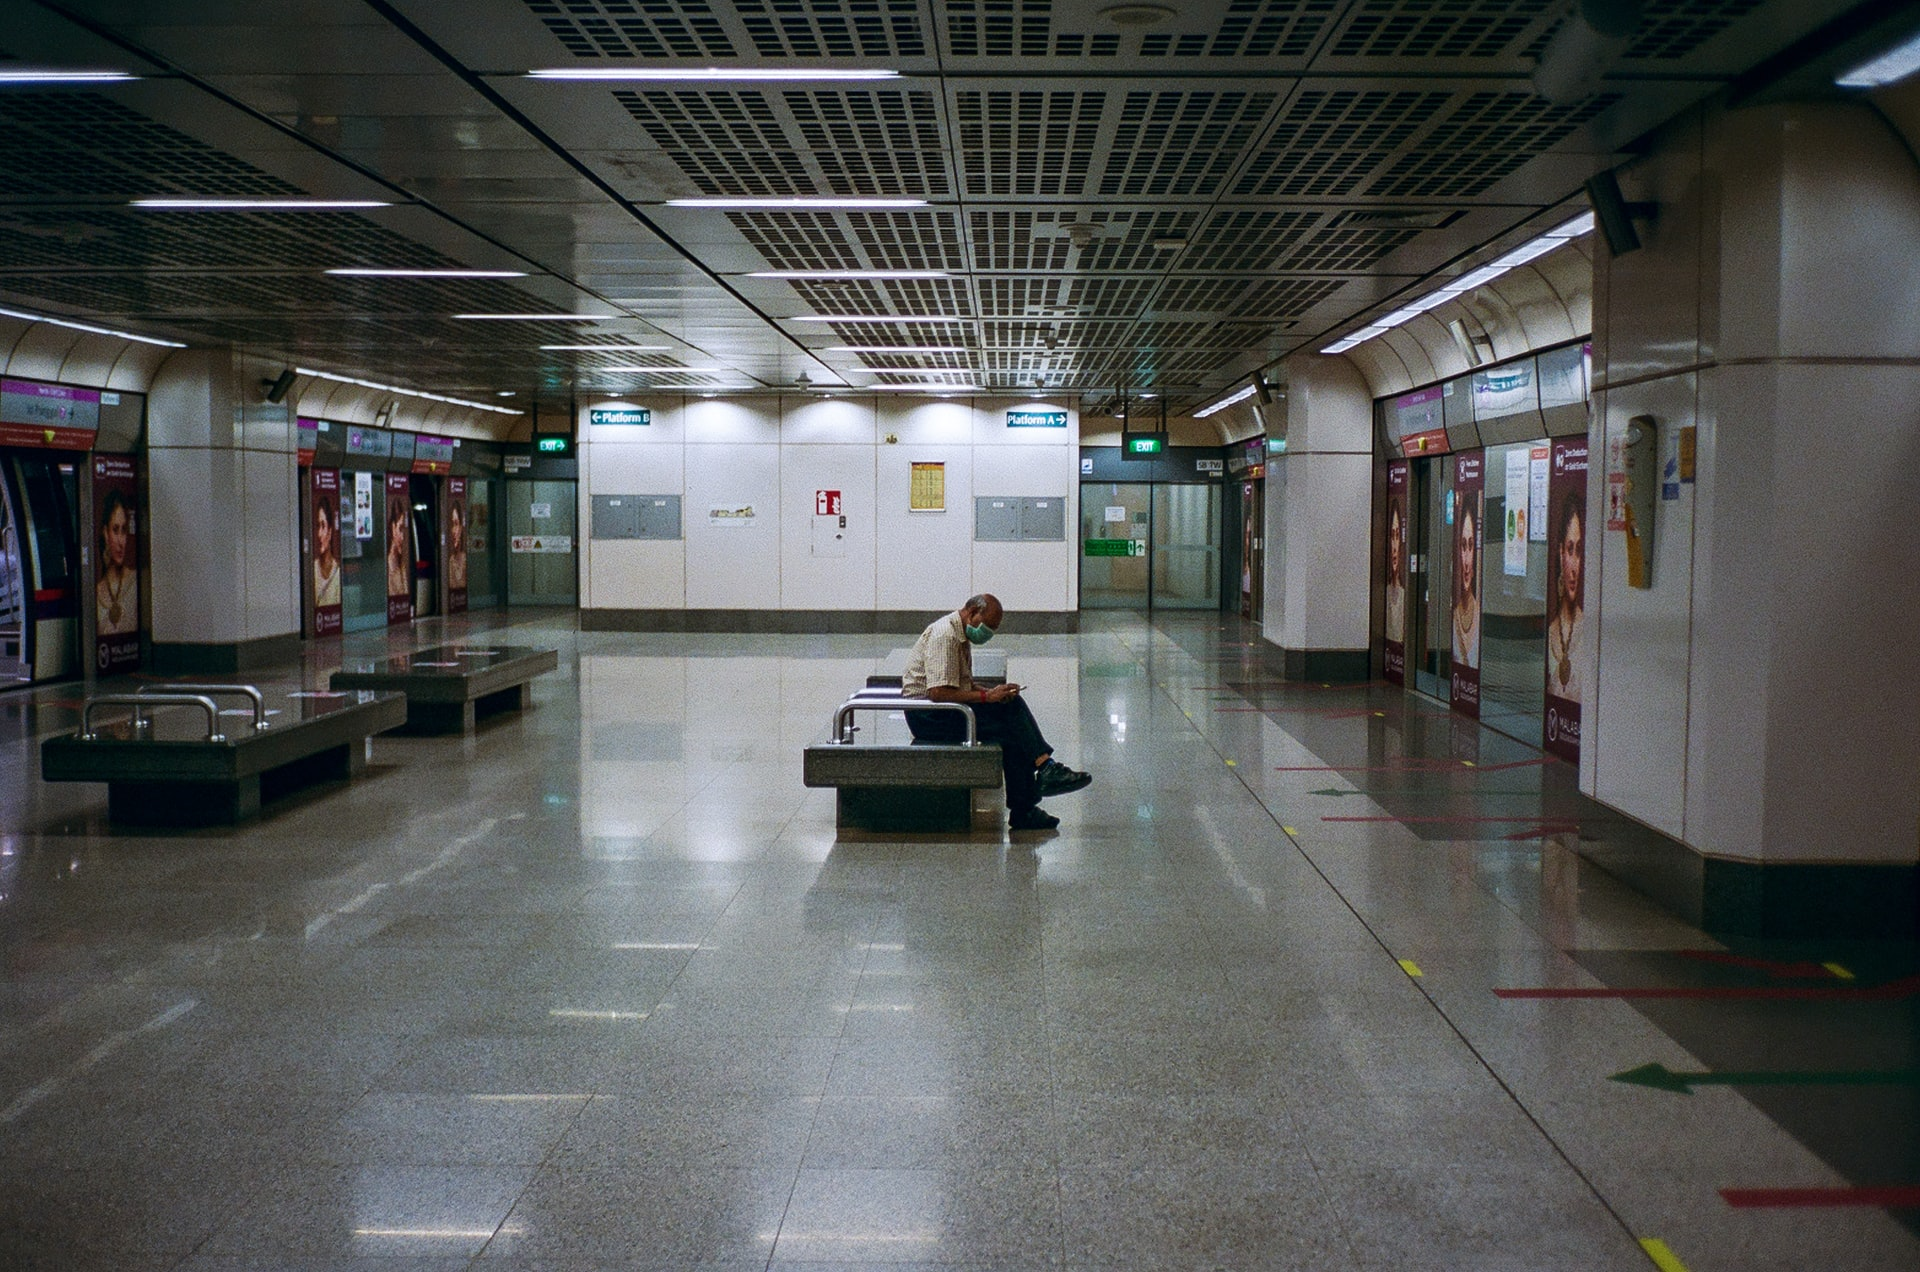 Man alone at subway (Photo by Shawn Ang)